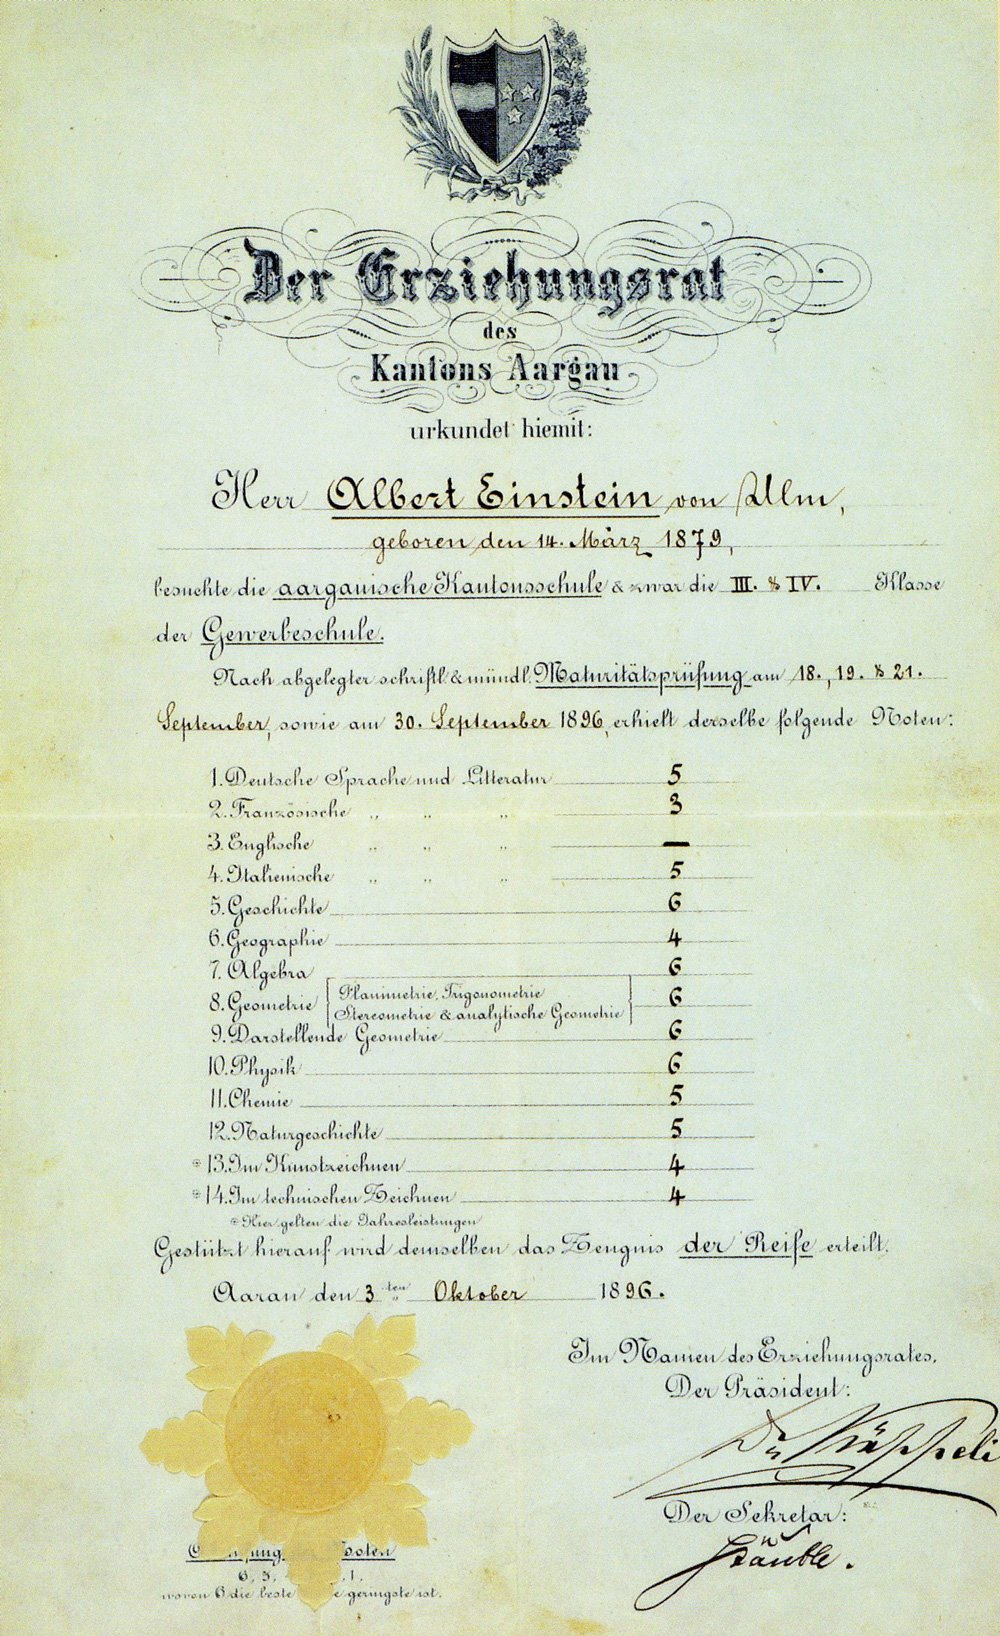 Einstein's matriculation certificate at the age of 17